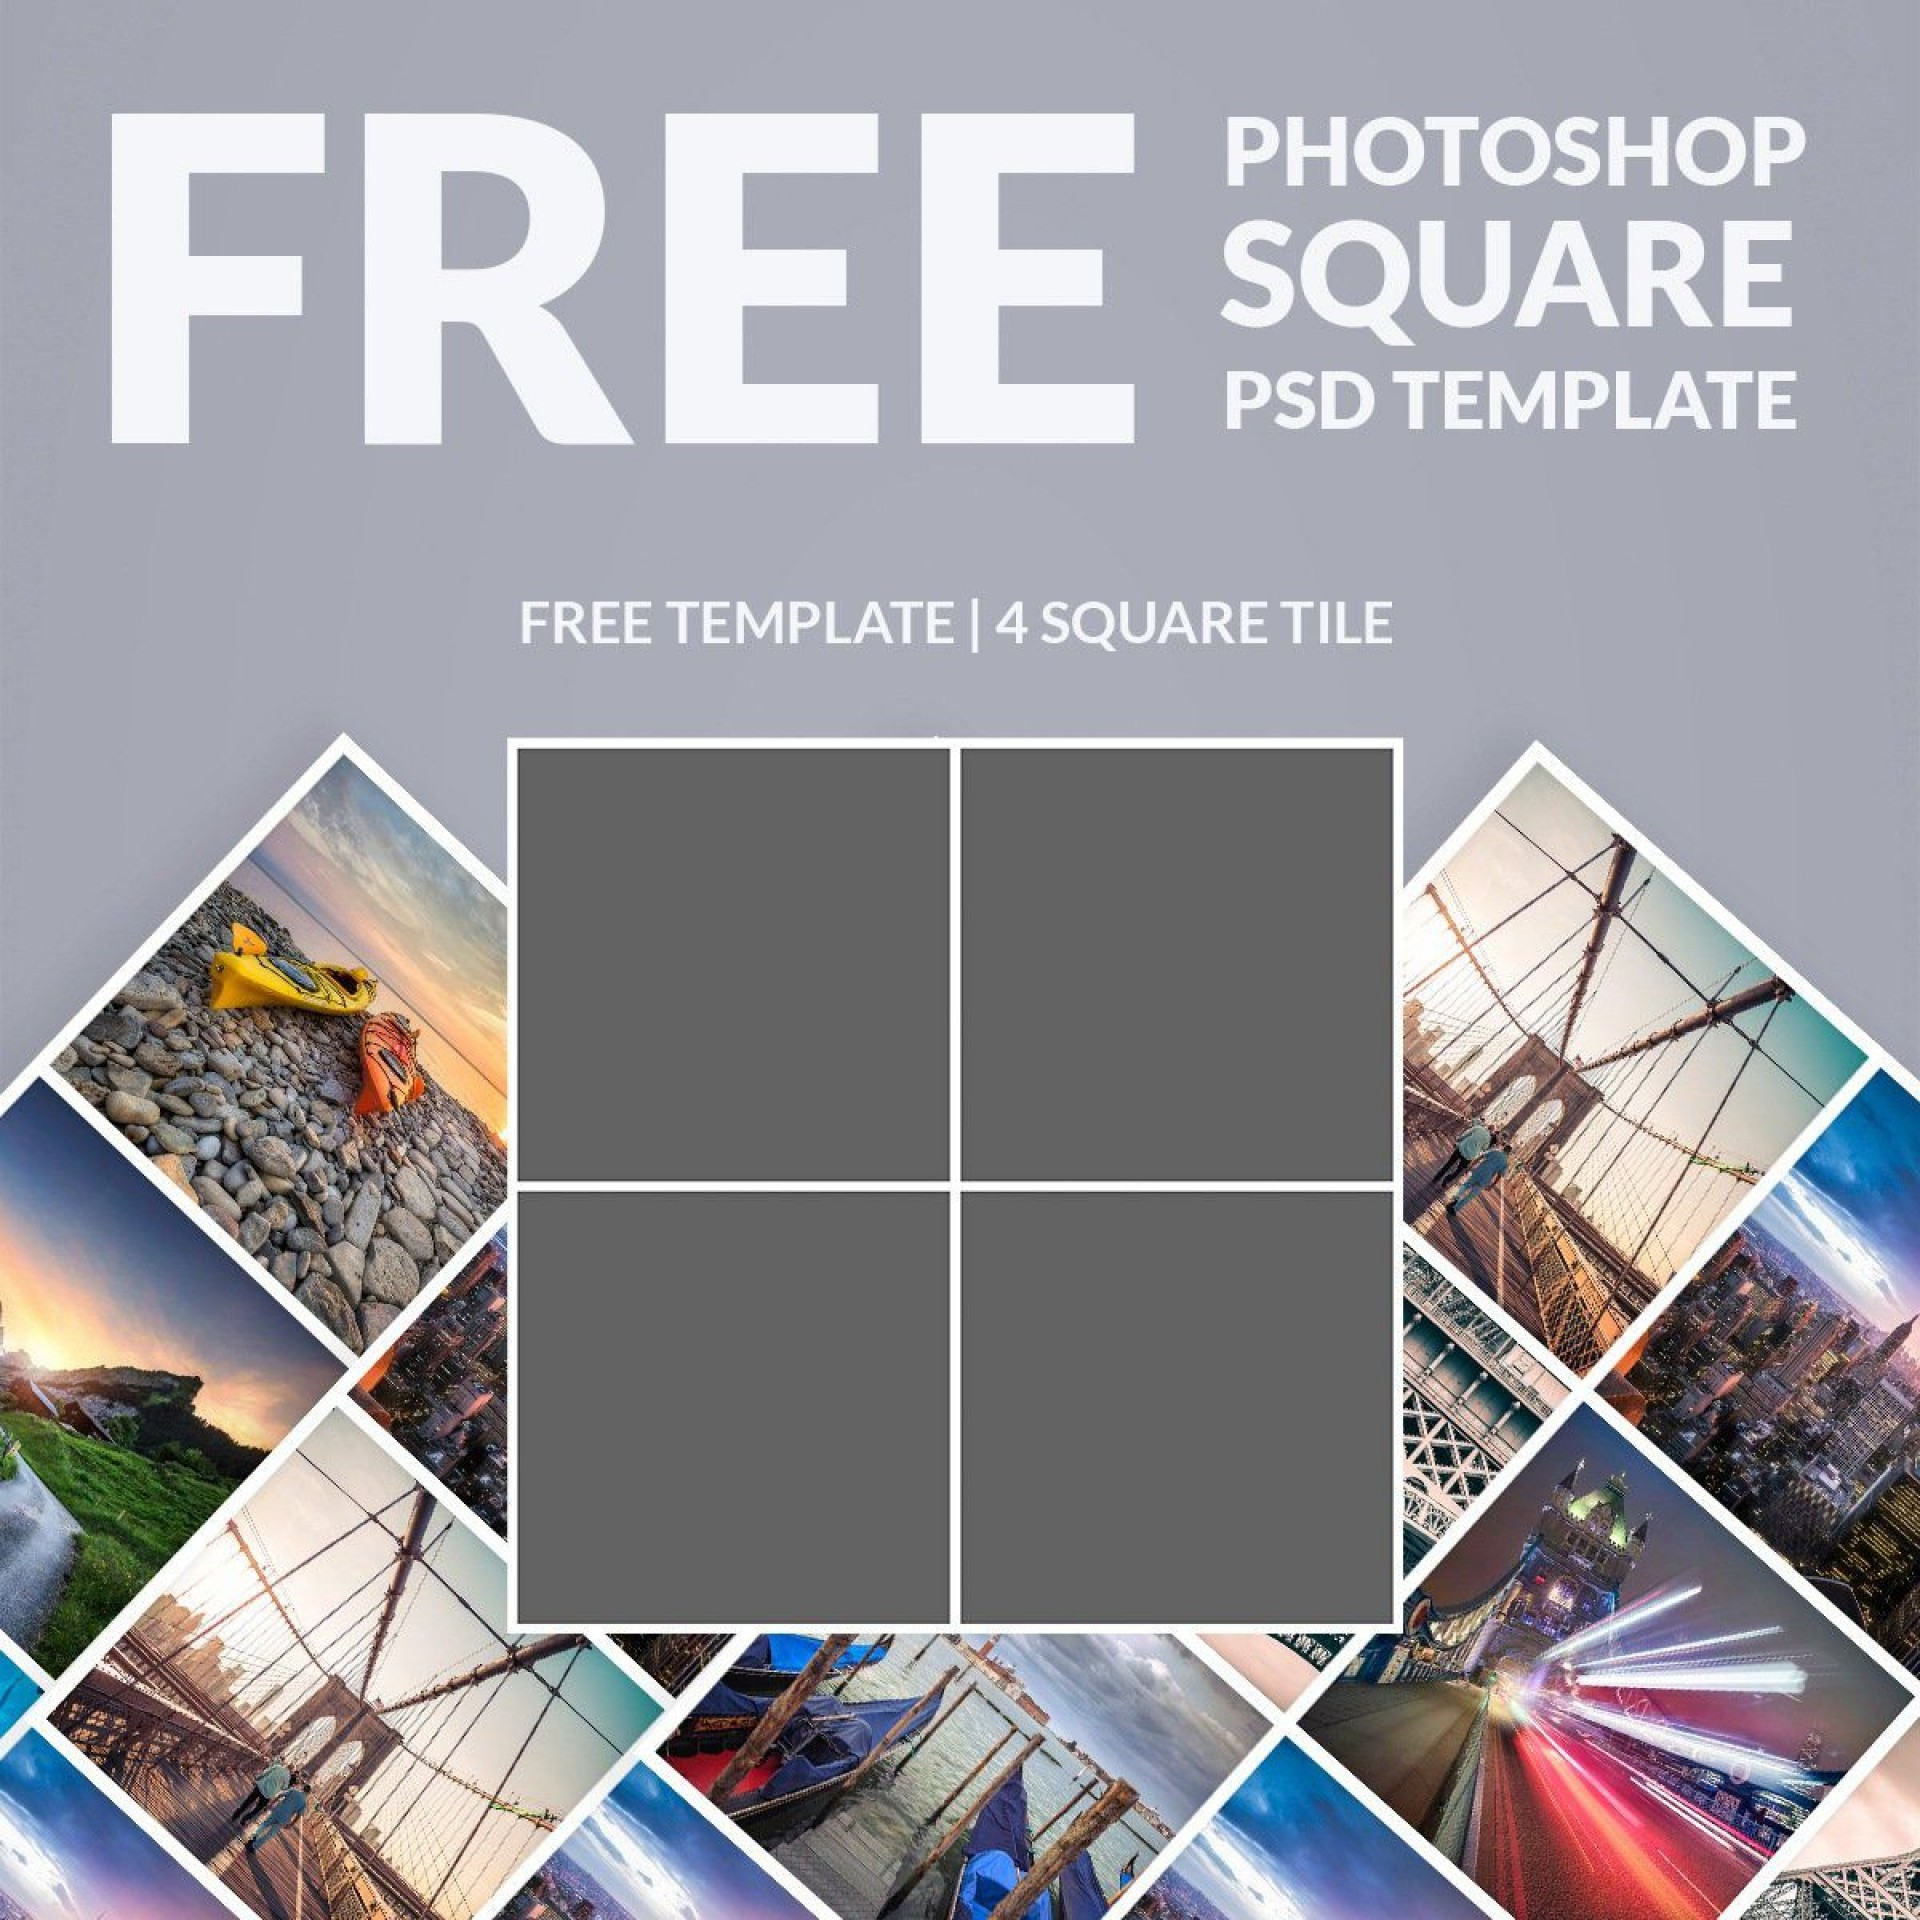 006 Formidable Free Photo Collage Template Psd High Resolution  Photoshop Download Heart Shaped For Element1920